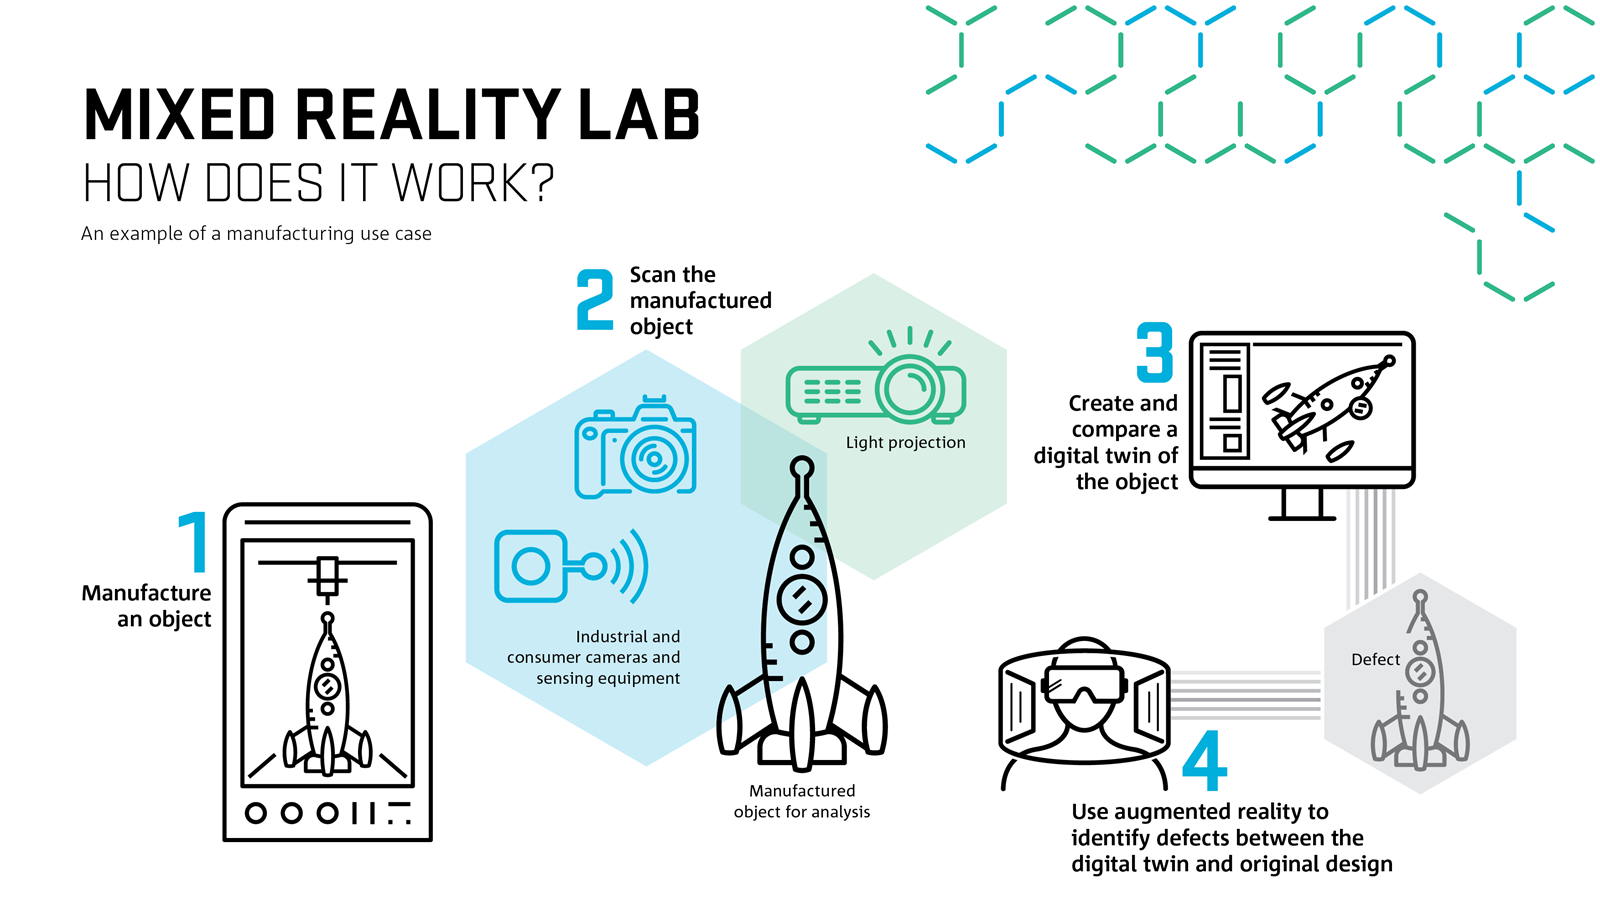 Infographic showing how the mixed reality lab technology works.